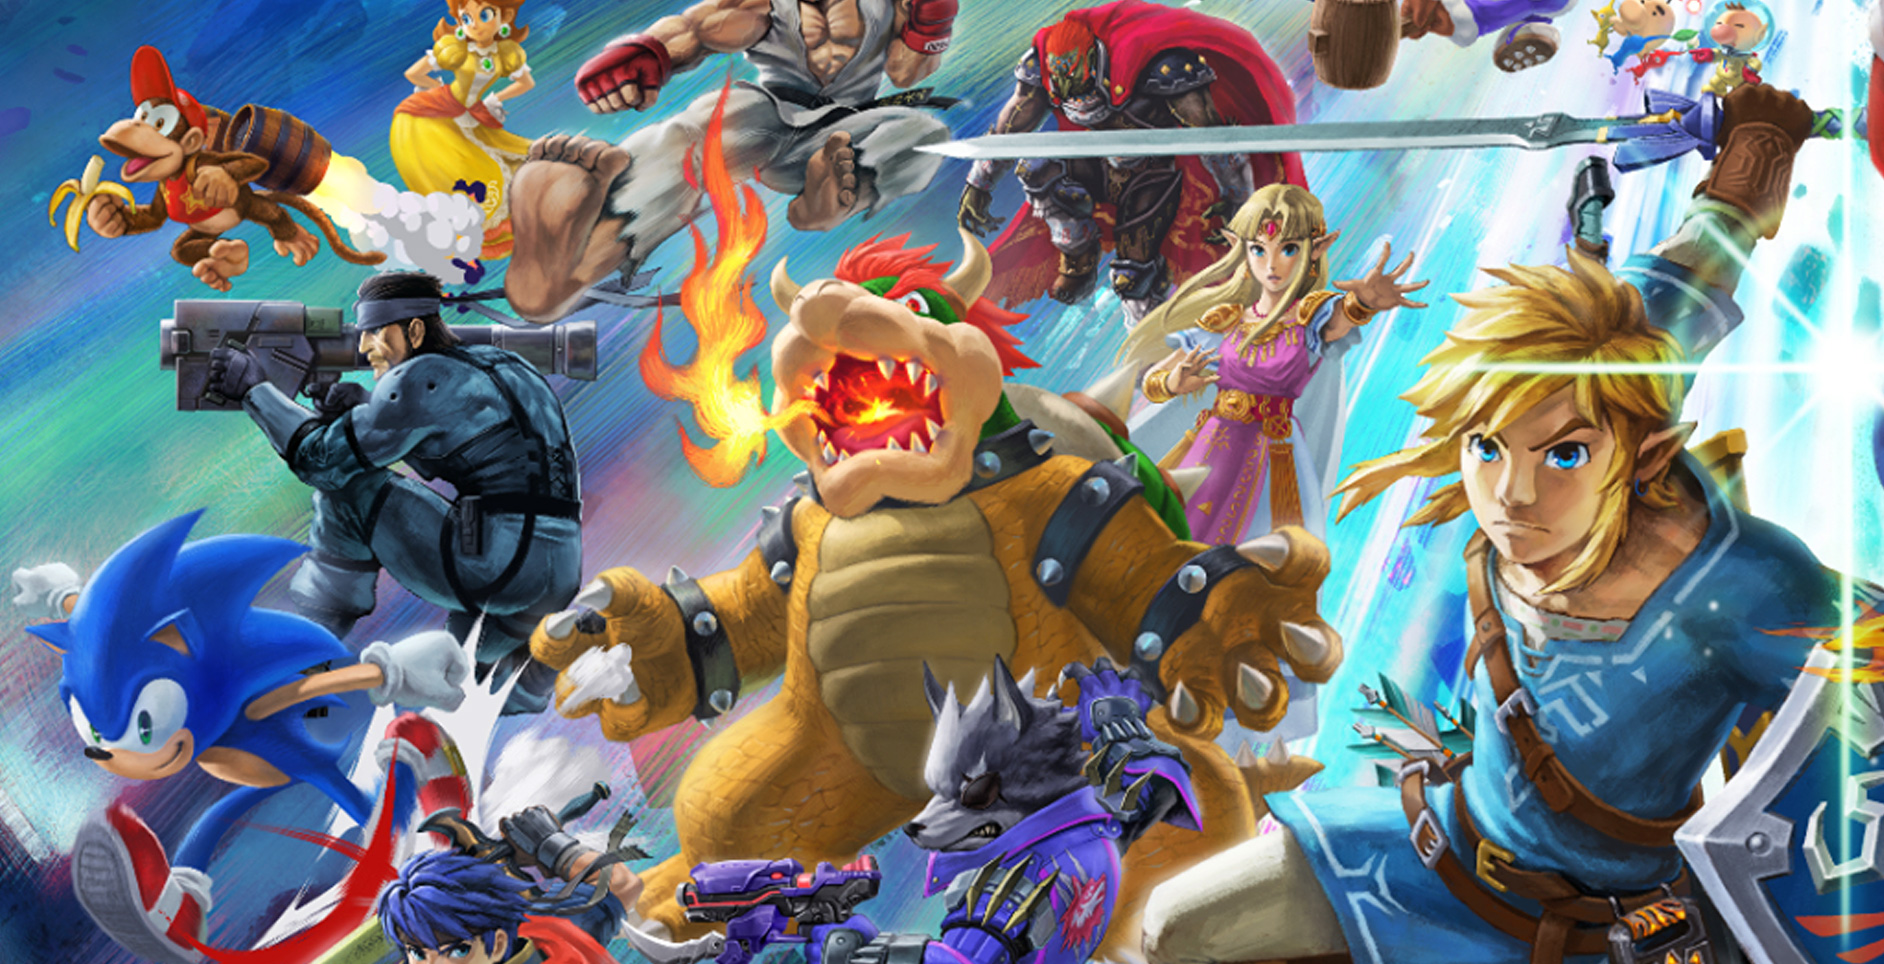 Super Smash Bros. Ultimate Leak Reveals Possible New DLC Characters